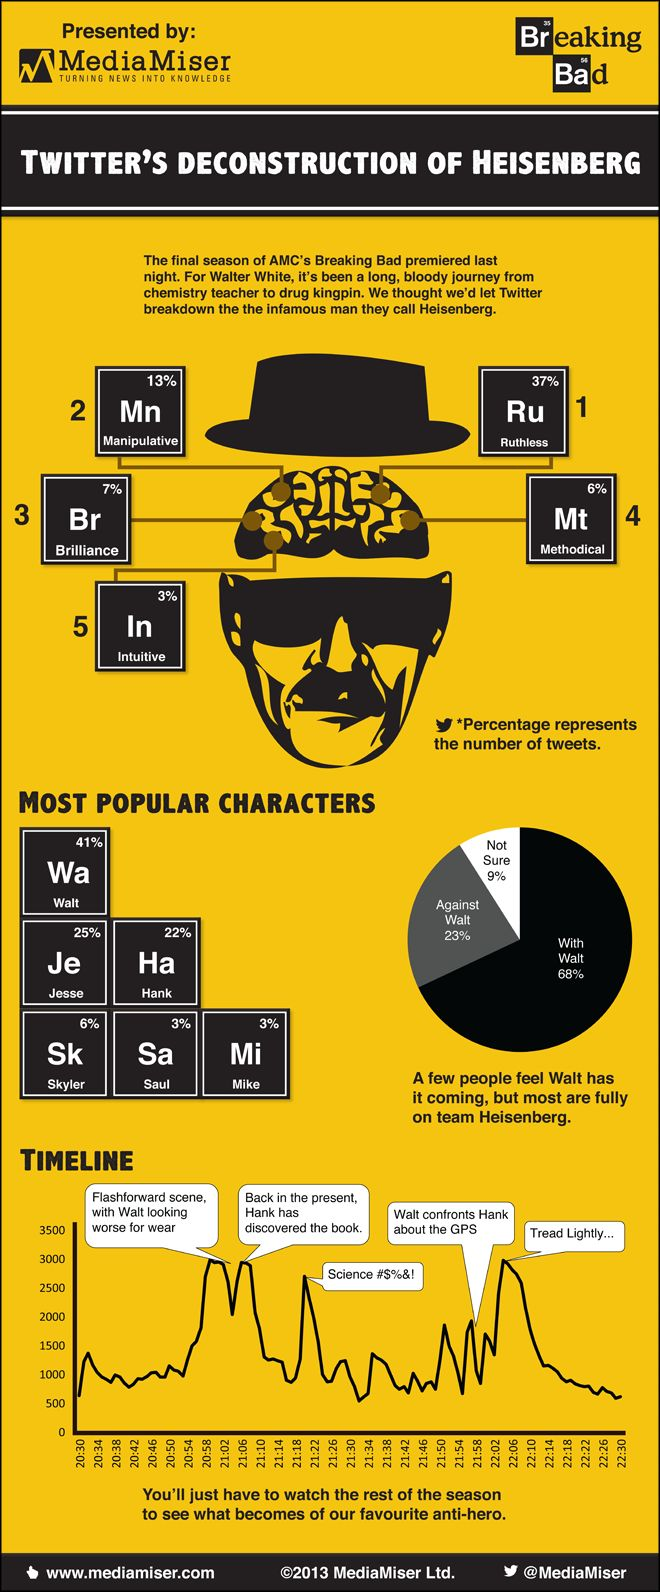 AMC's Breaking Bad: #Twitter's deconstruction of Heisenberg - #SocialMedia #Infographic